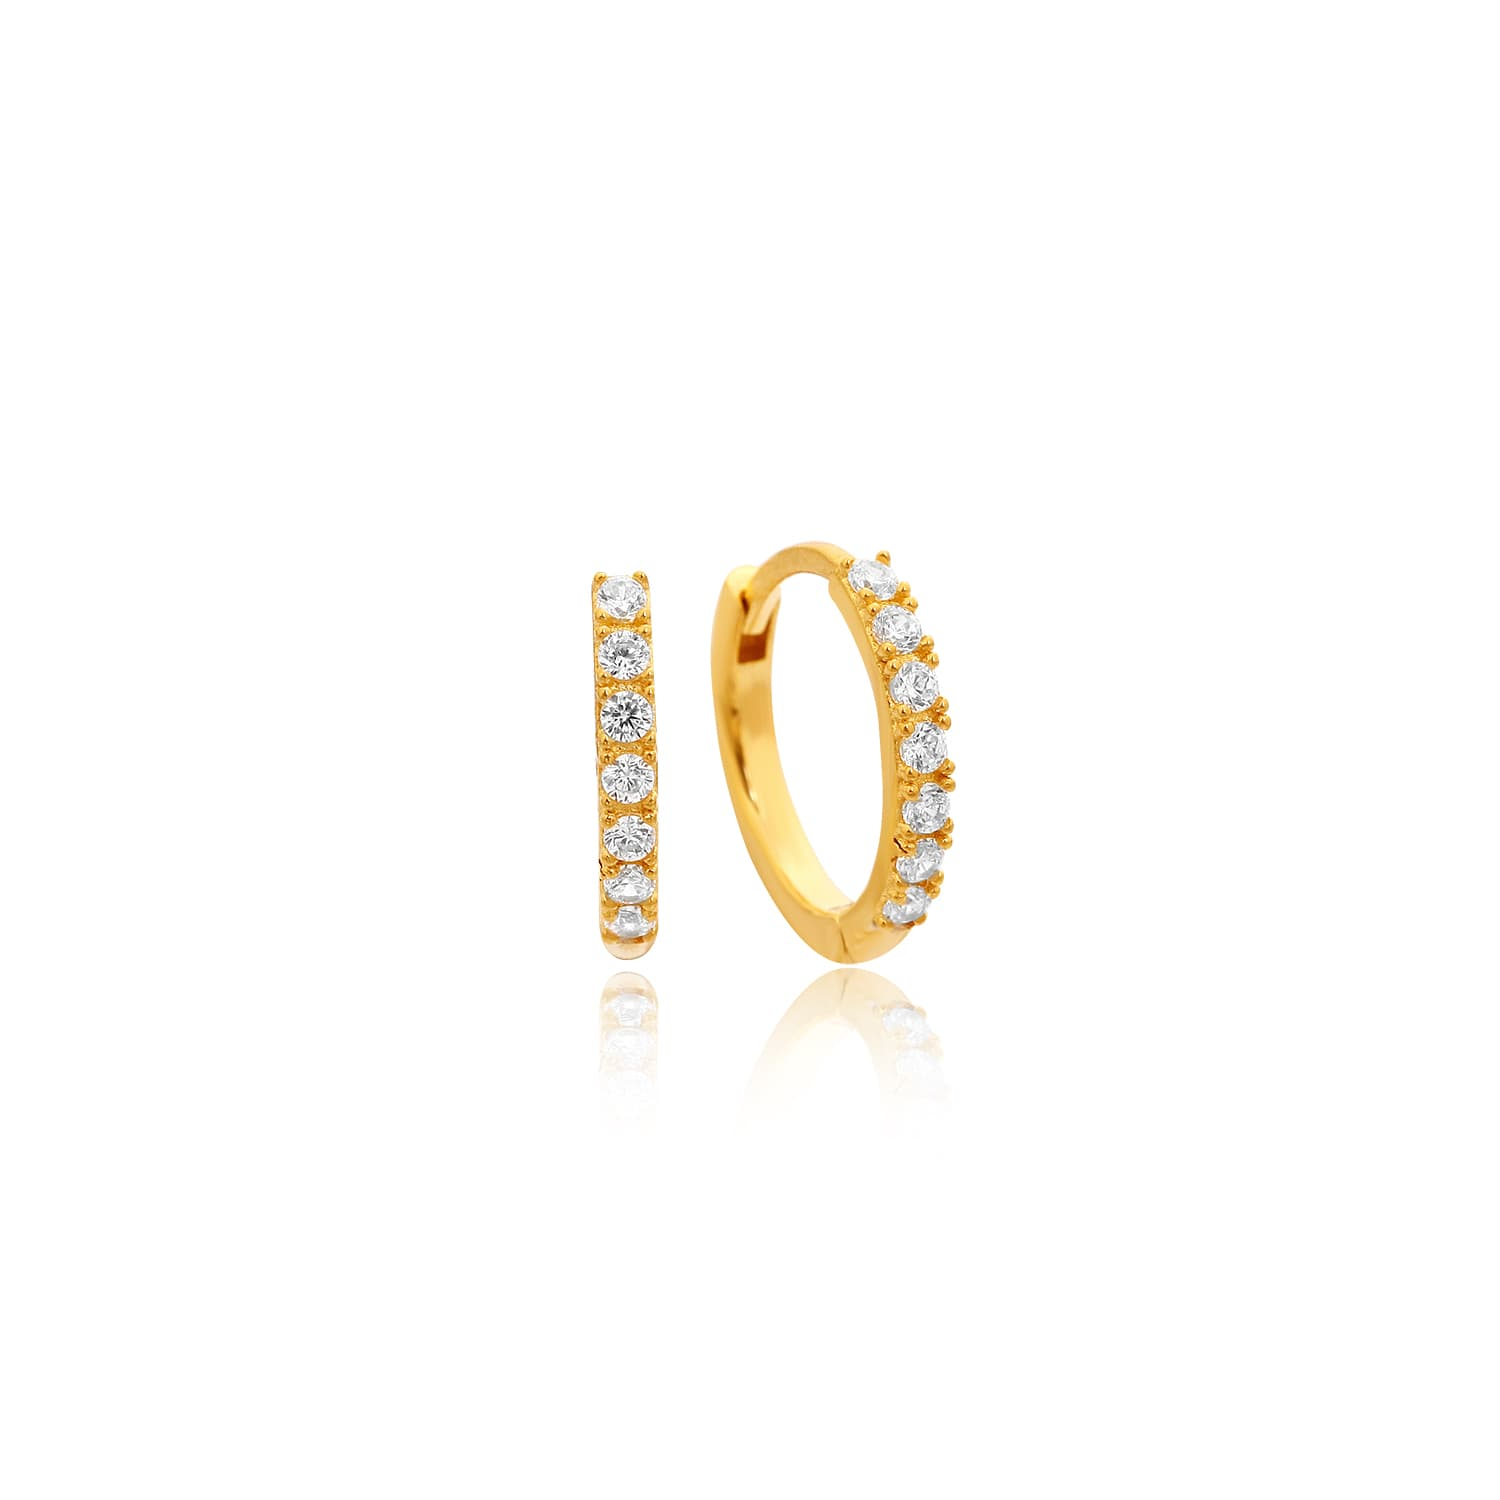 MINI RING EARRING ZIRCON